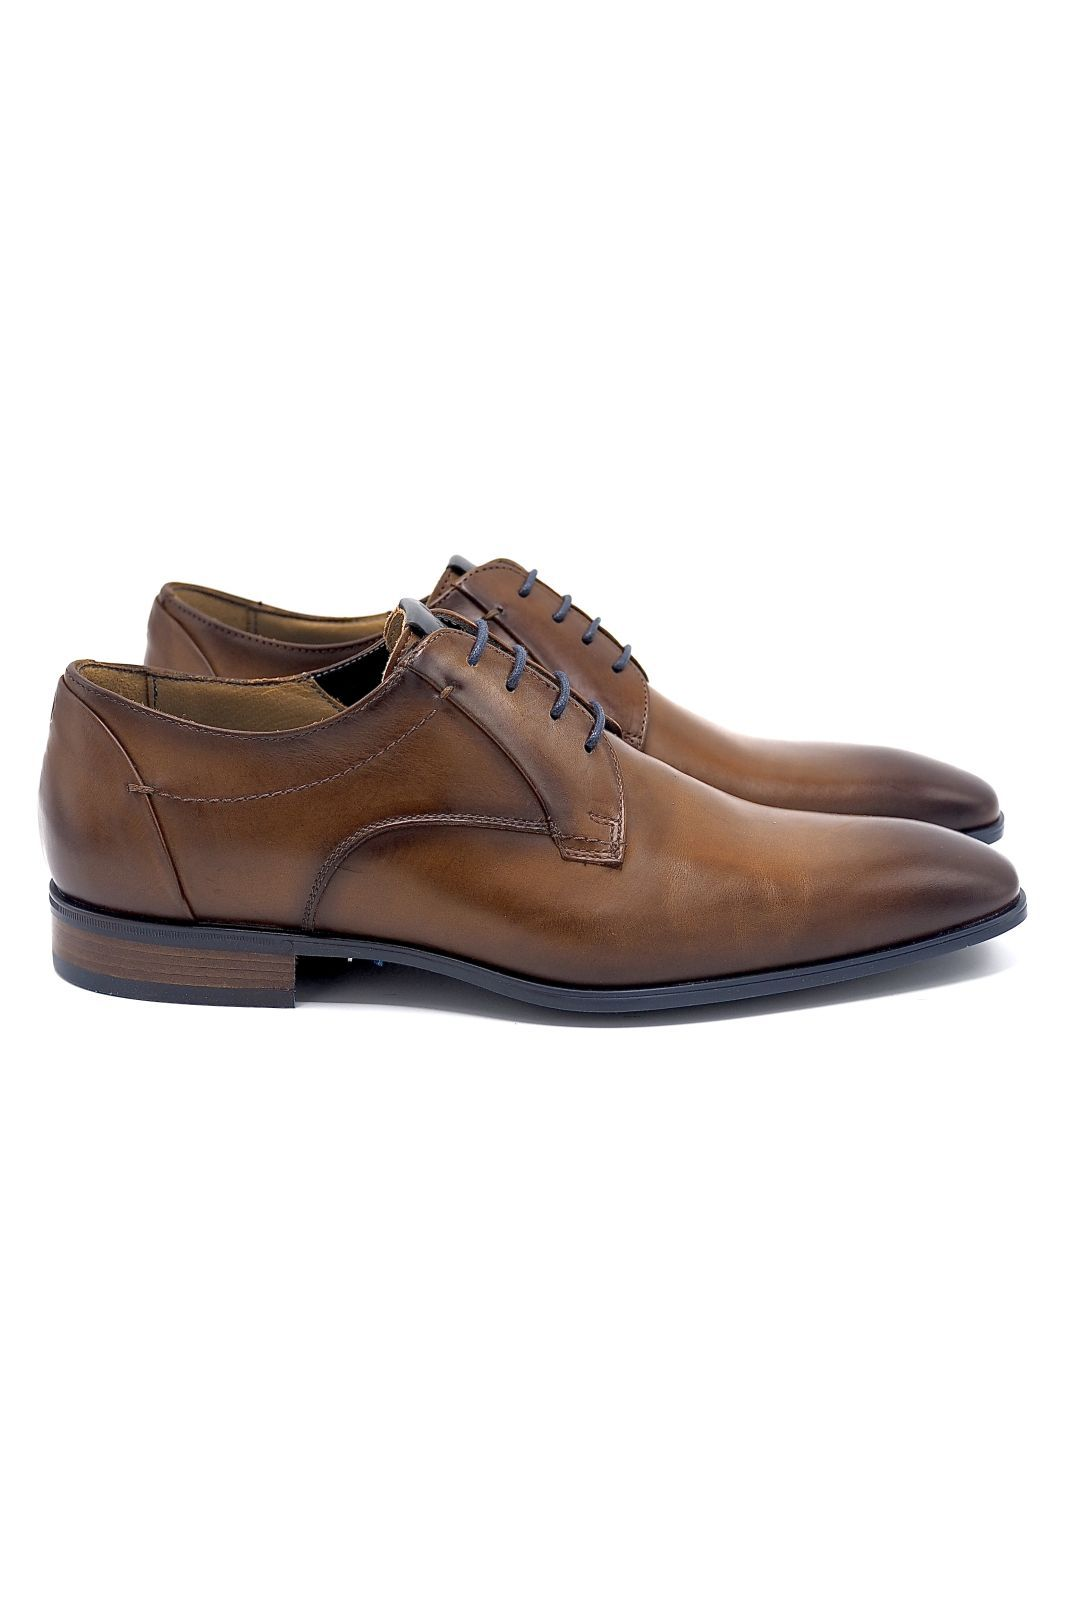 Giorgio 1958 molière Naturel hommes (GG1958-Classic lacet - 964134 fine lacet cognac) - Marine | Much more than shoes